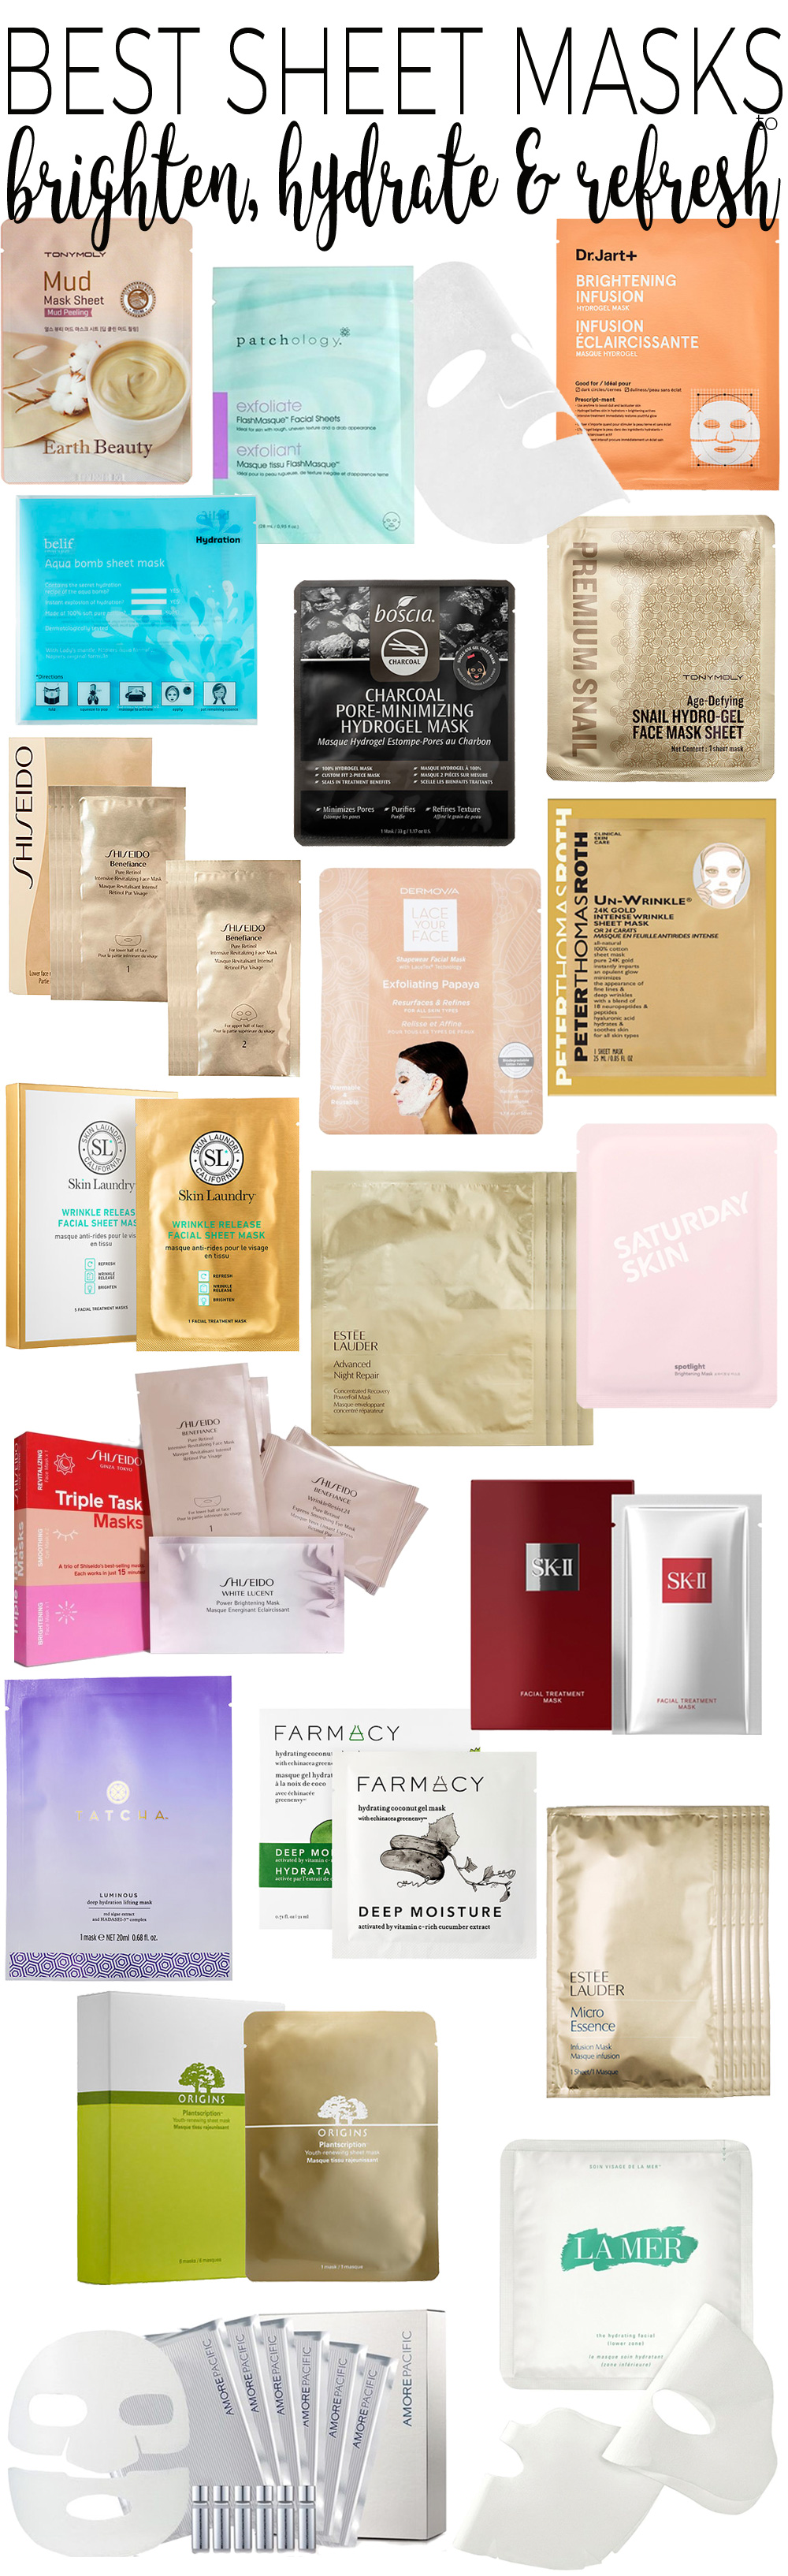 Top 20 Sheet Masks to Brighten, Hydrate and Refresh Skin